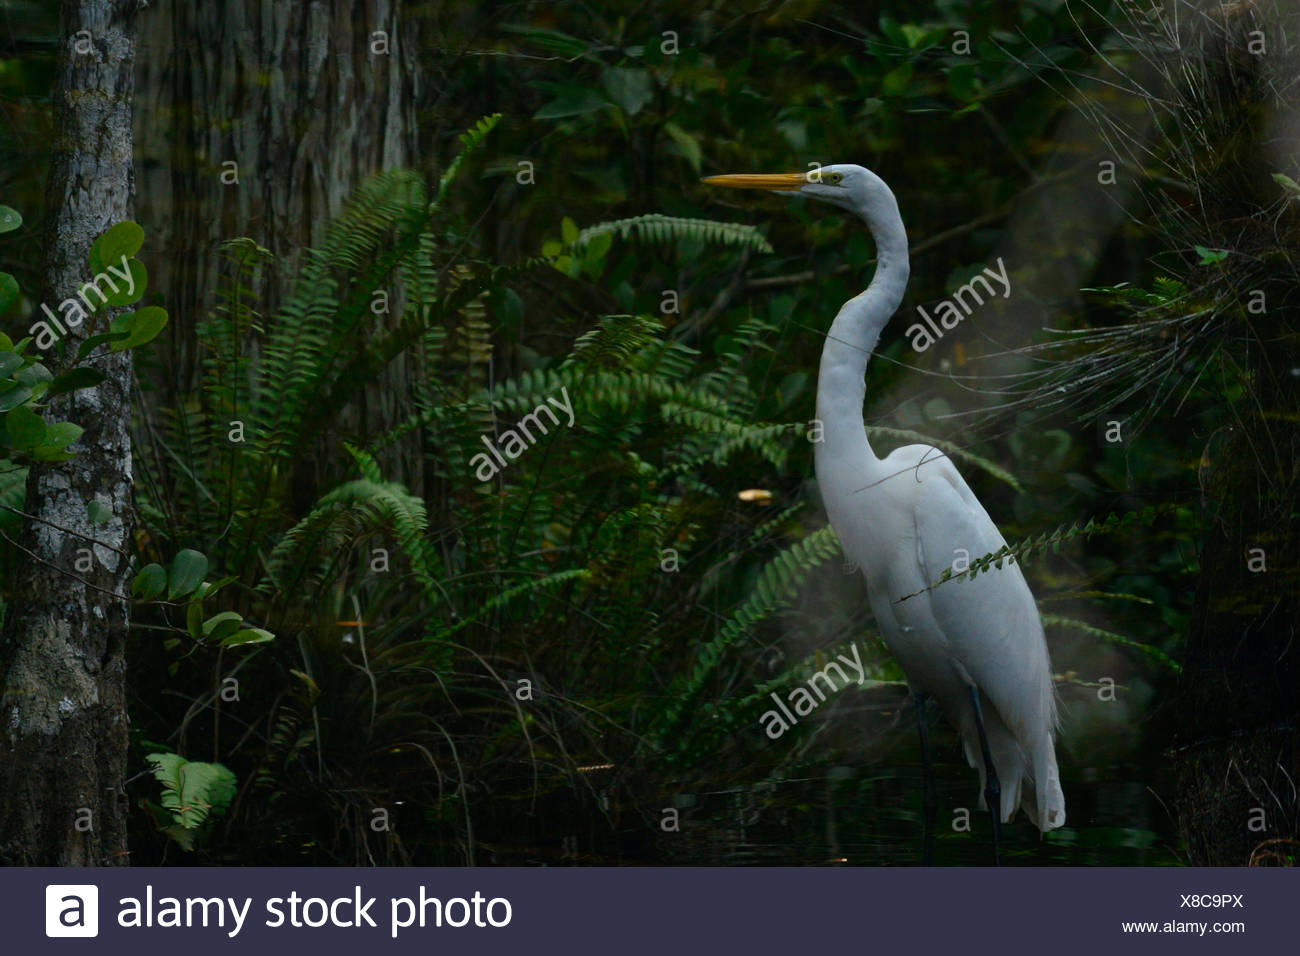 Reflection in water of a white heron. - Stock Image